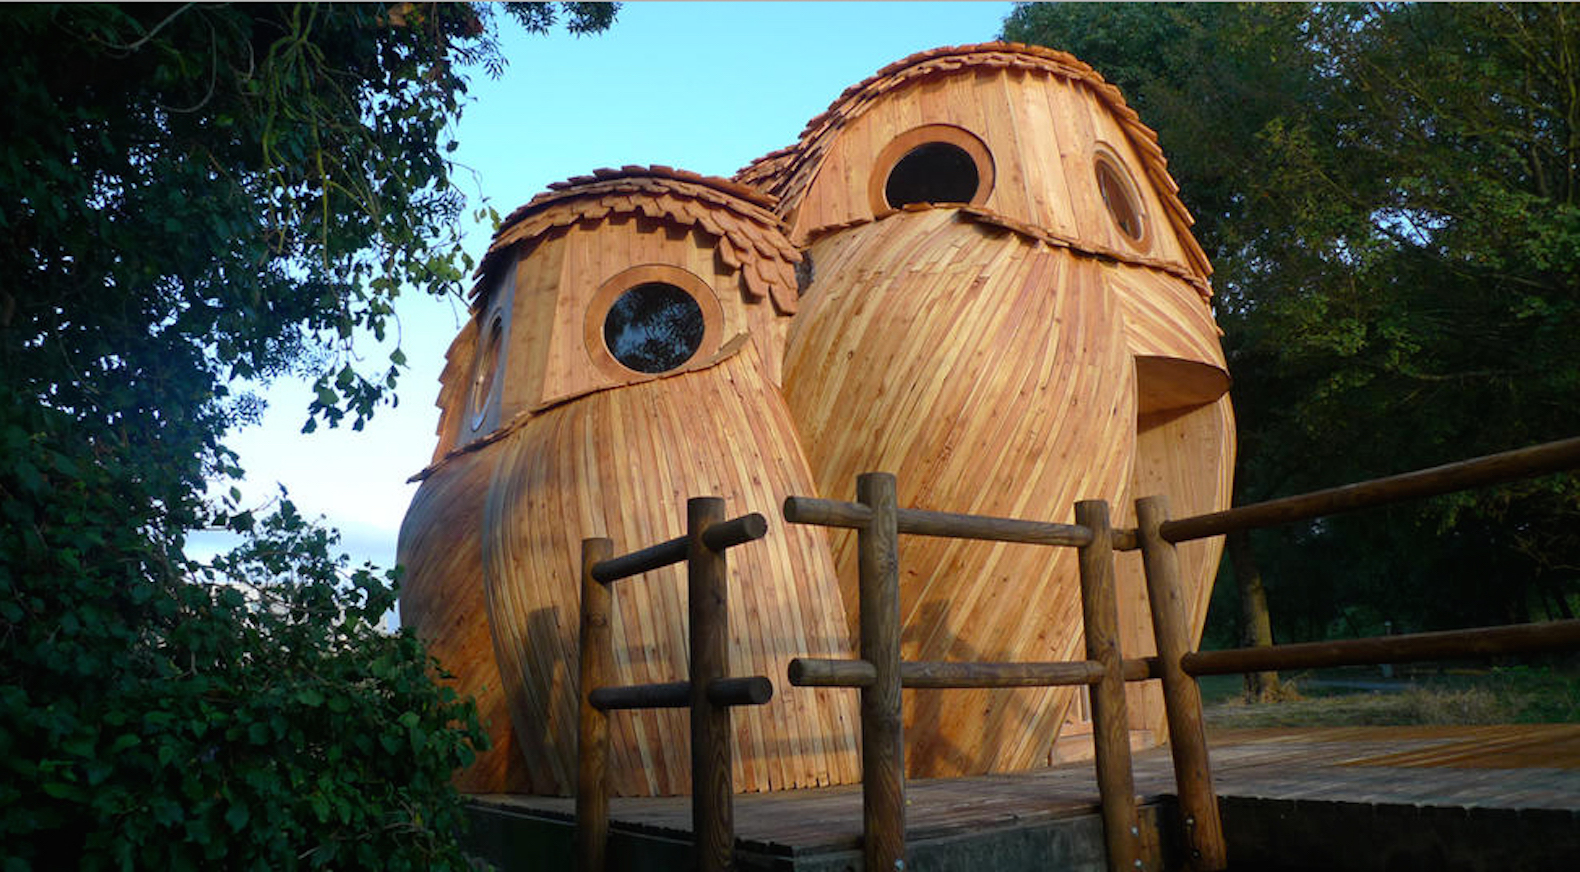 Adorable owl cabins let you camp inside for free and off the grid in France